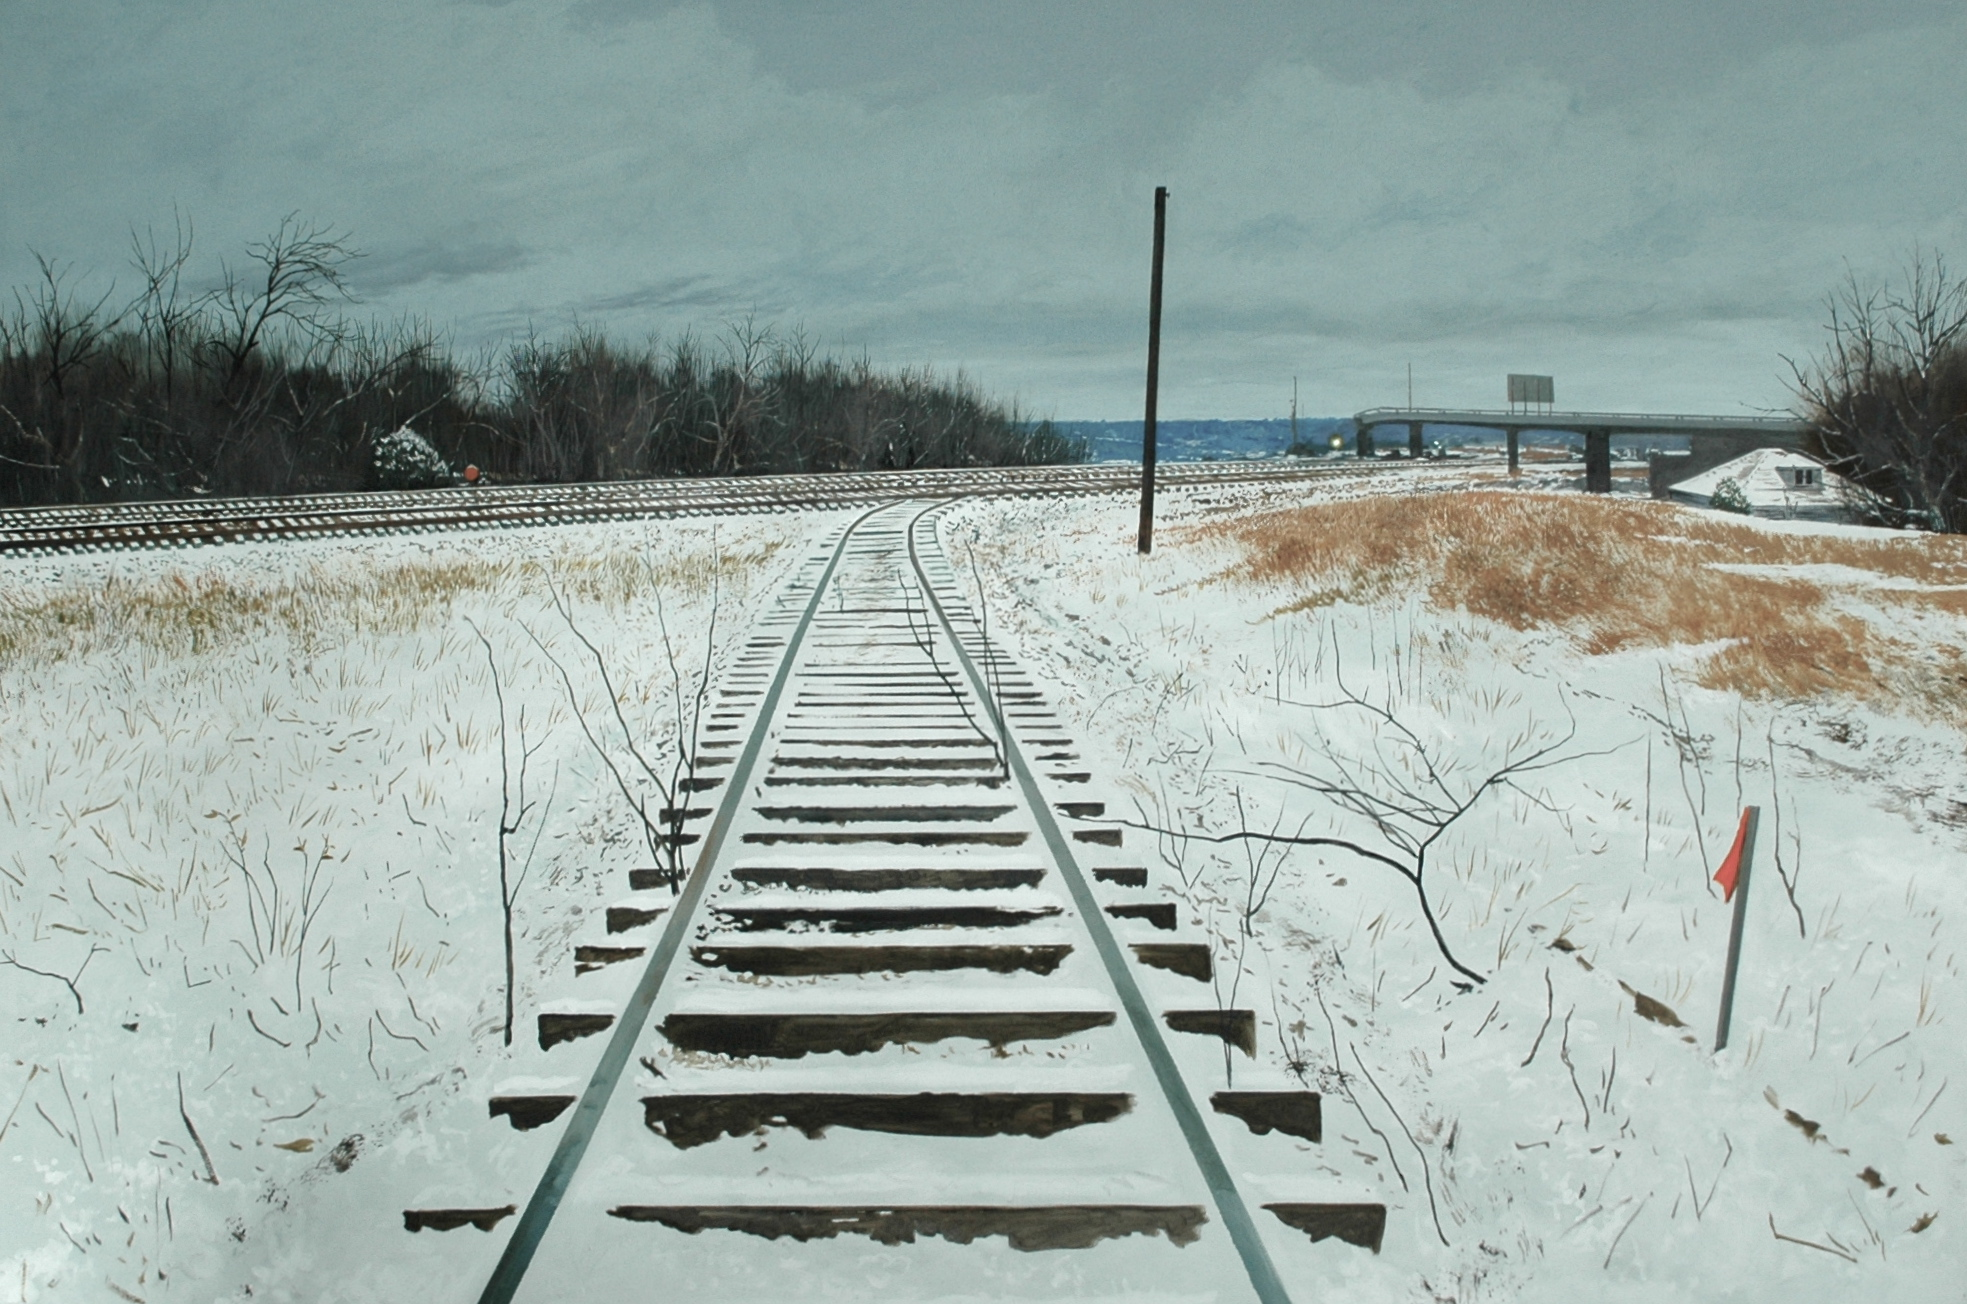 "Daniel Blagg, Switch Track, 2009, oil on canvas, 60 x 40"".  In the collection of Bates Container, Fort Worth, TX."